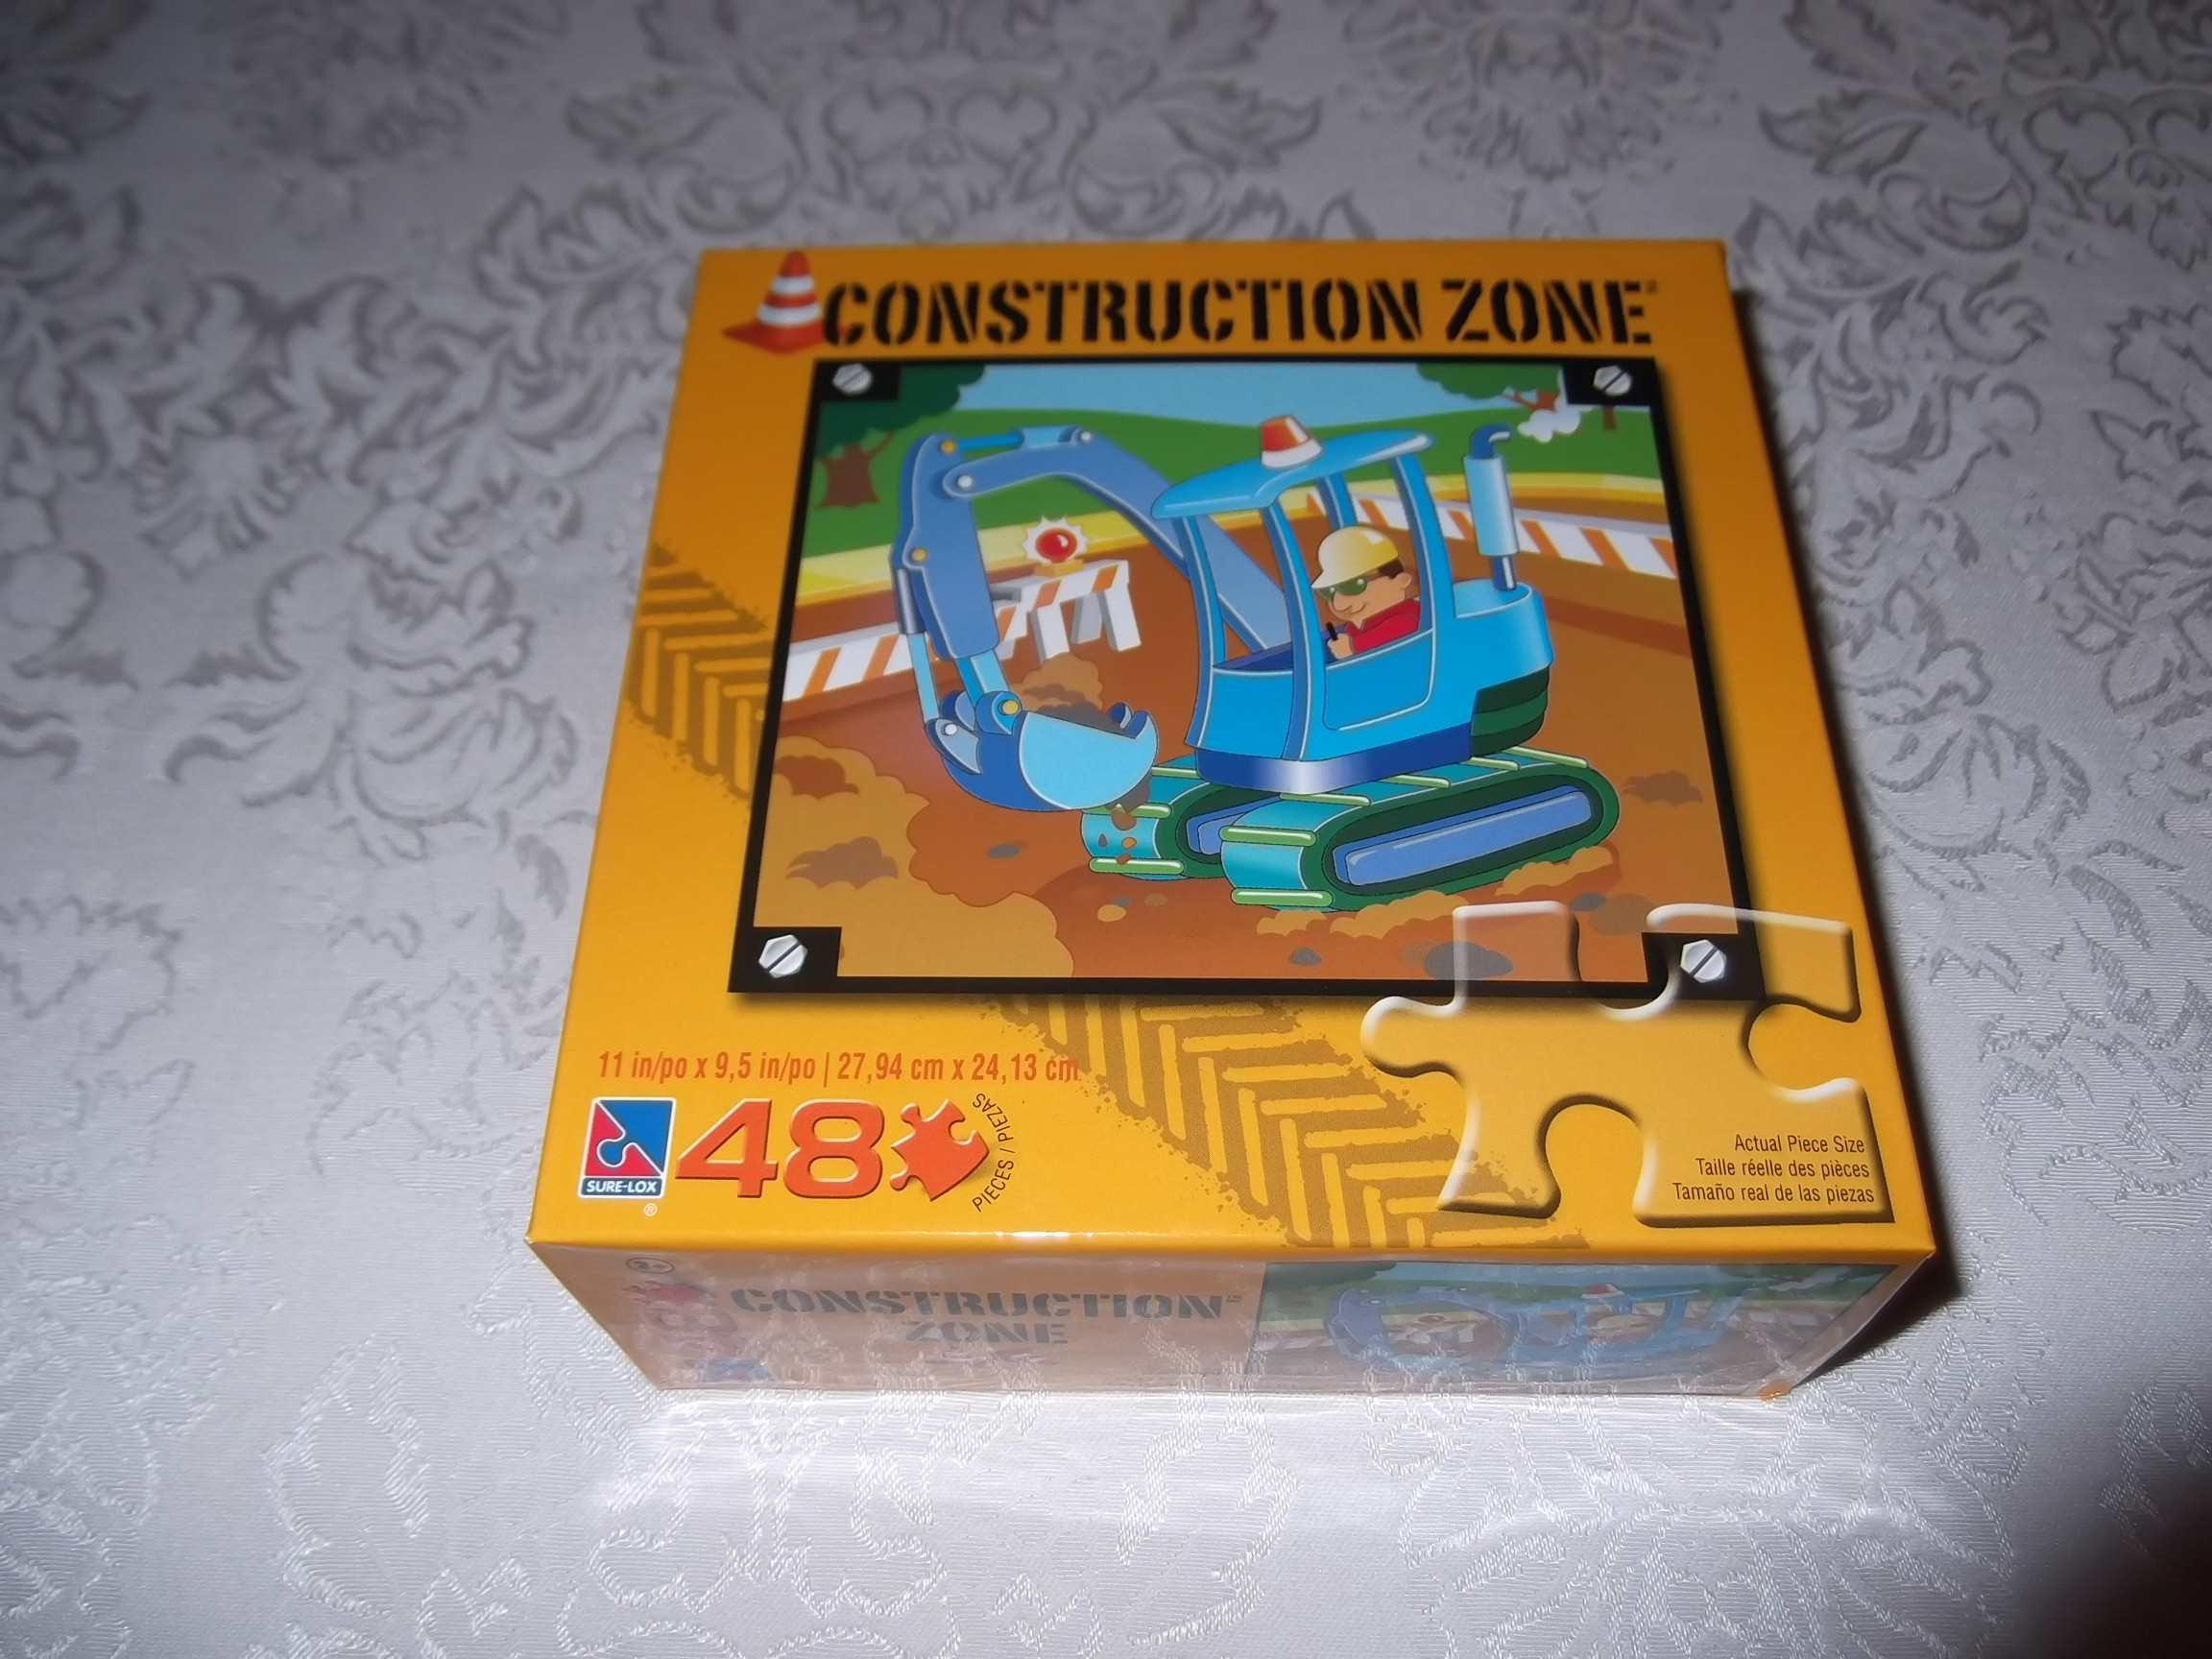 Construction Zone Excavator Puzzle 48 Piece, 8.5 x 11 inches New in Box